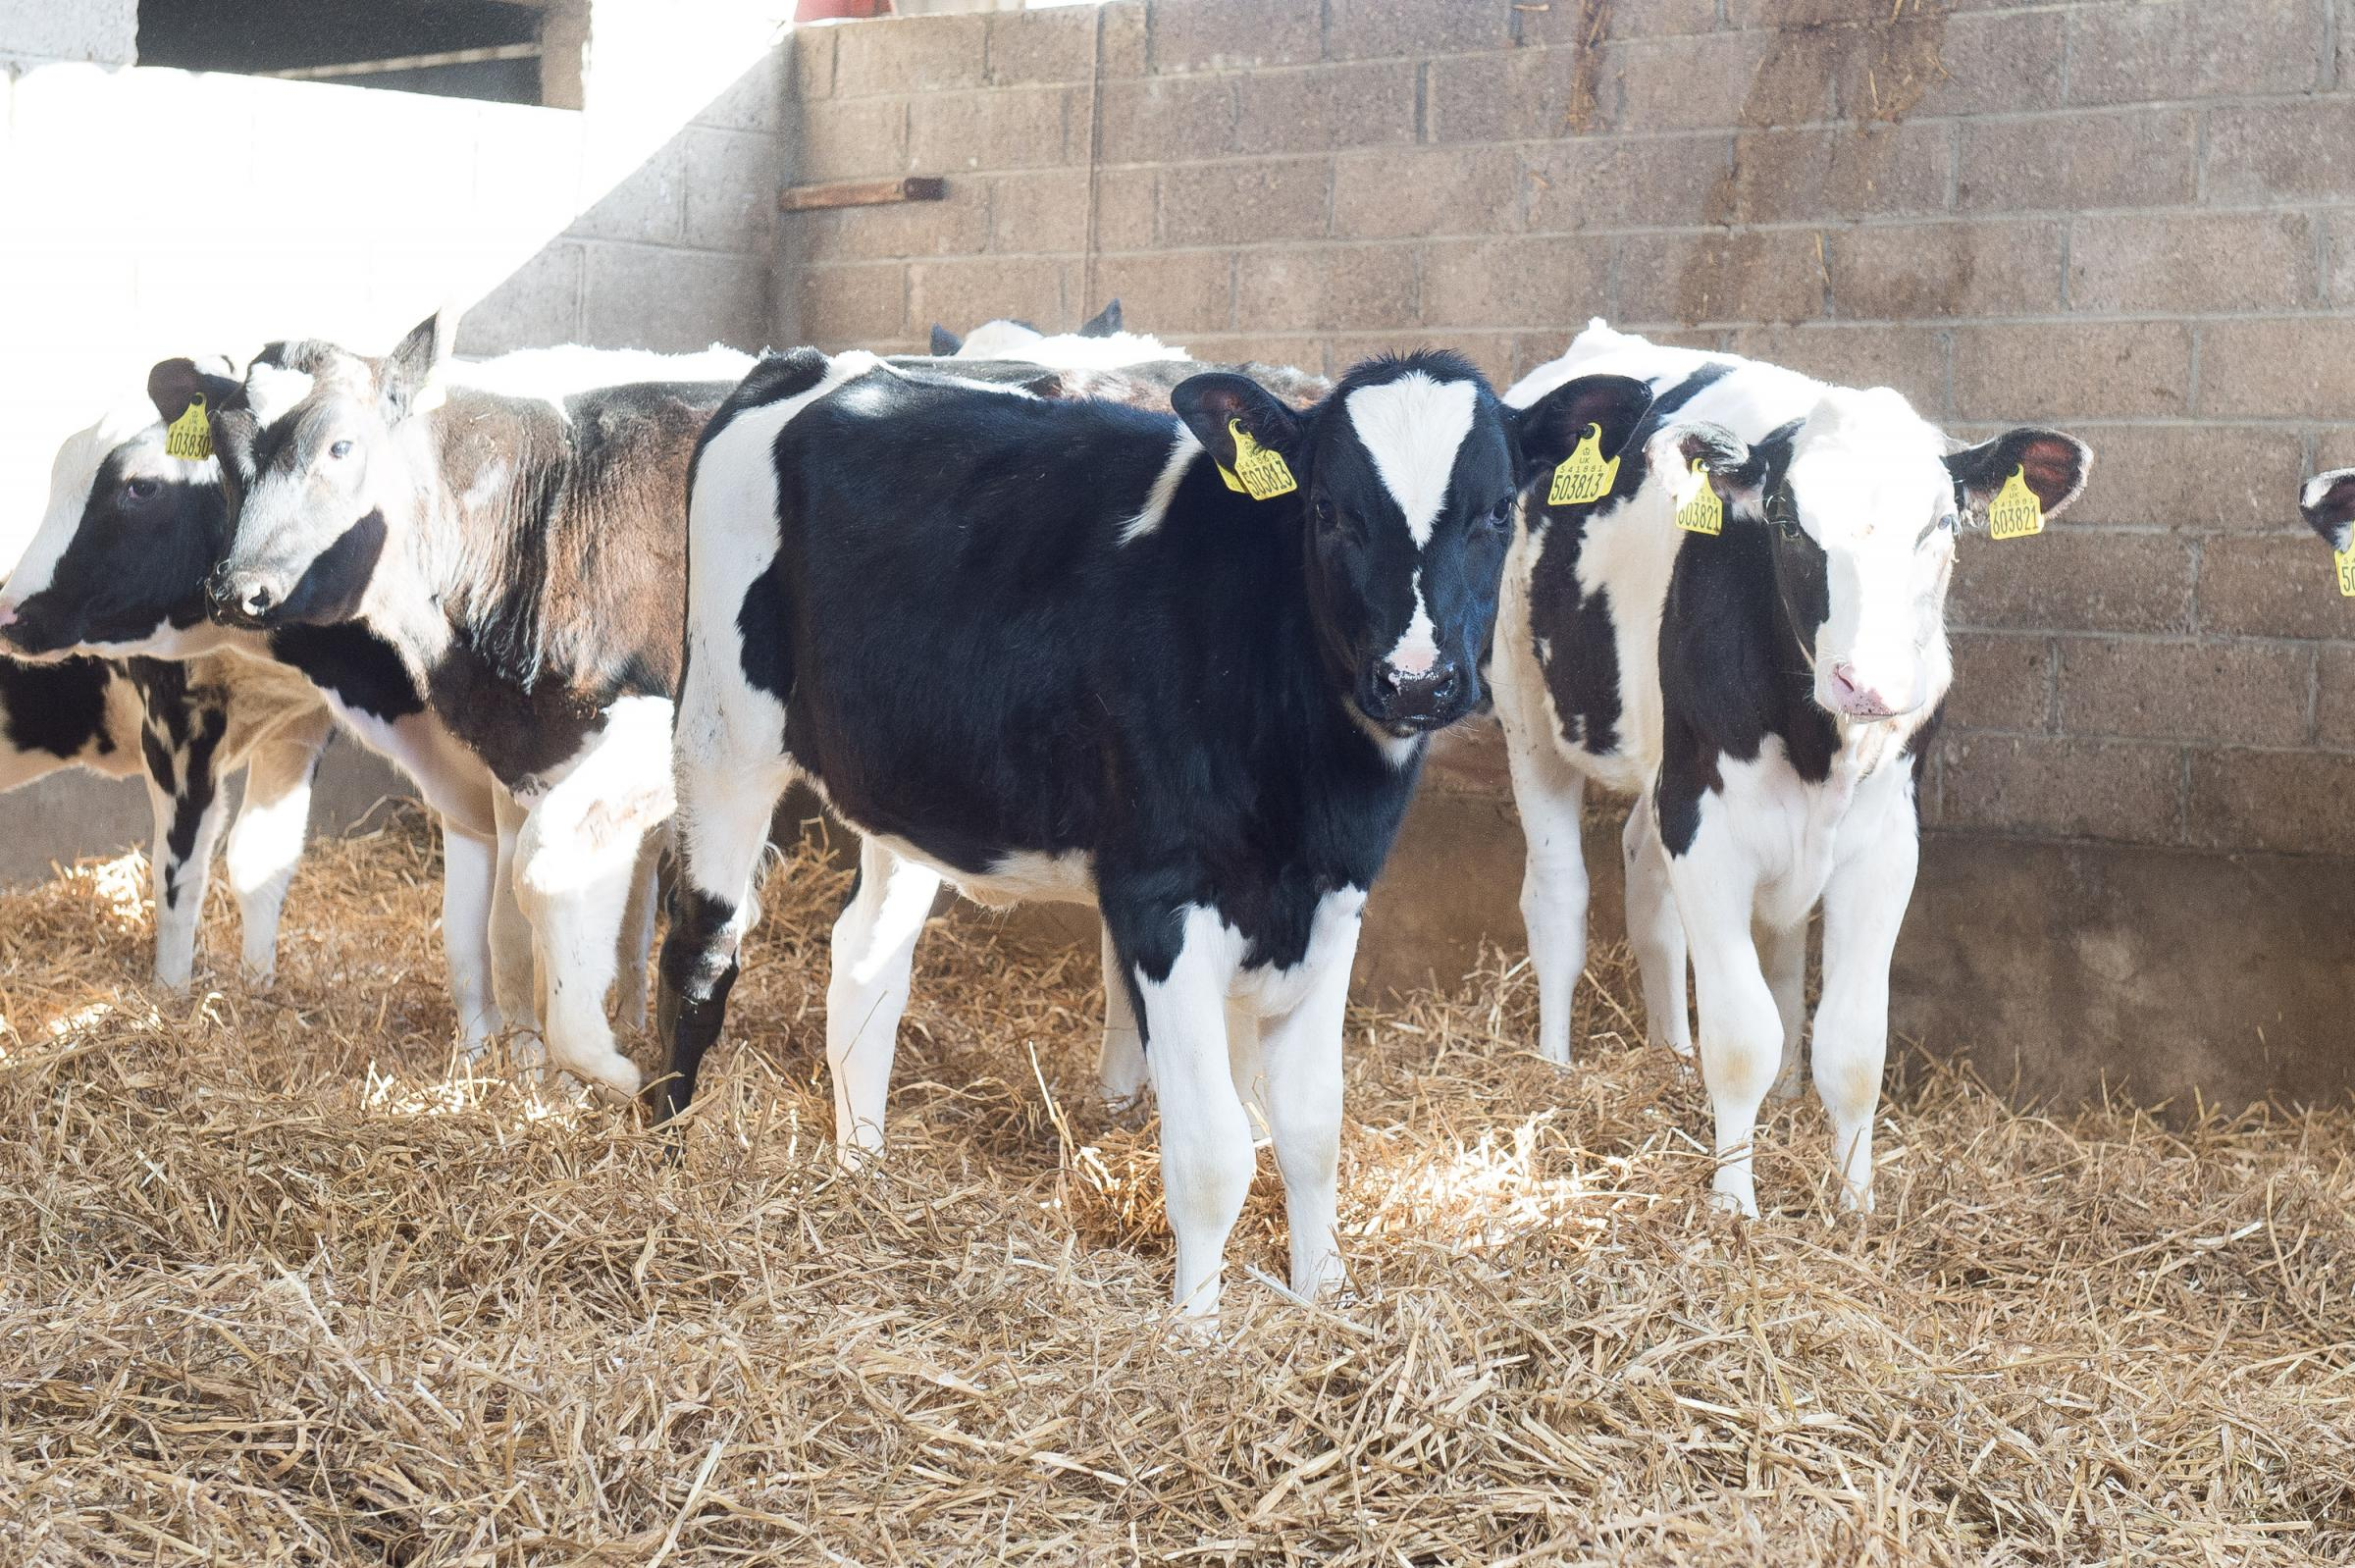 Calves in their first grazing season are most at risk of disease and should be dosed for worms